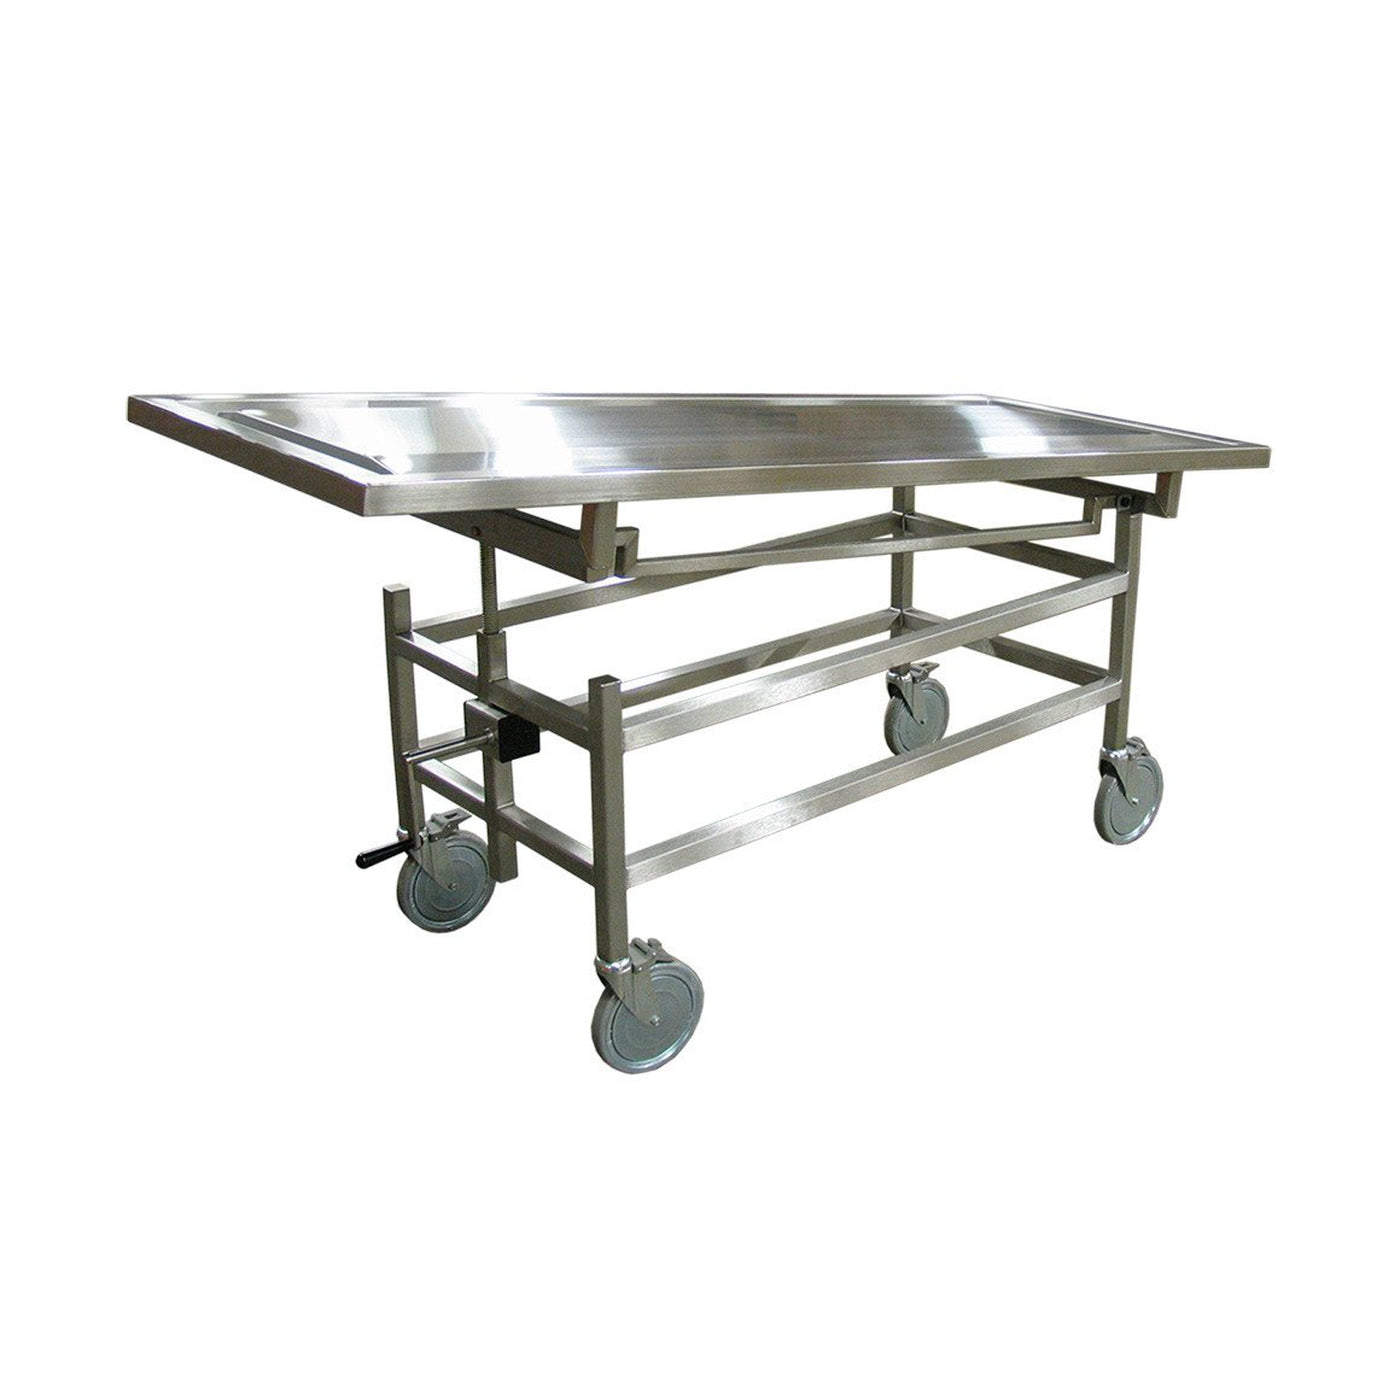 Standard Autopsy Carrier-Body Transporter-Mortech Manufacturing Company Inc. Quality Stainless Steel Autopsy, Morgue, Funeral Home, Necropsy, Veterinary / Anatomy, Dissection Equipment and Accessories